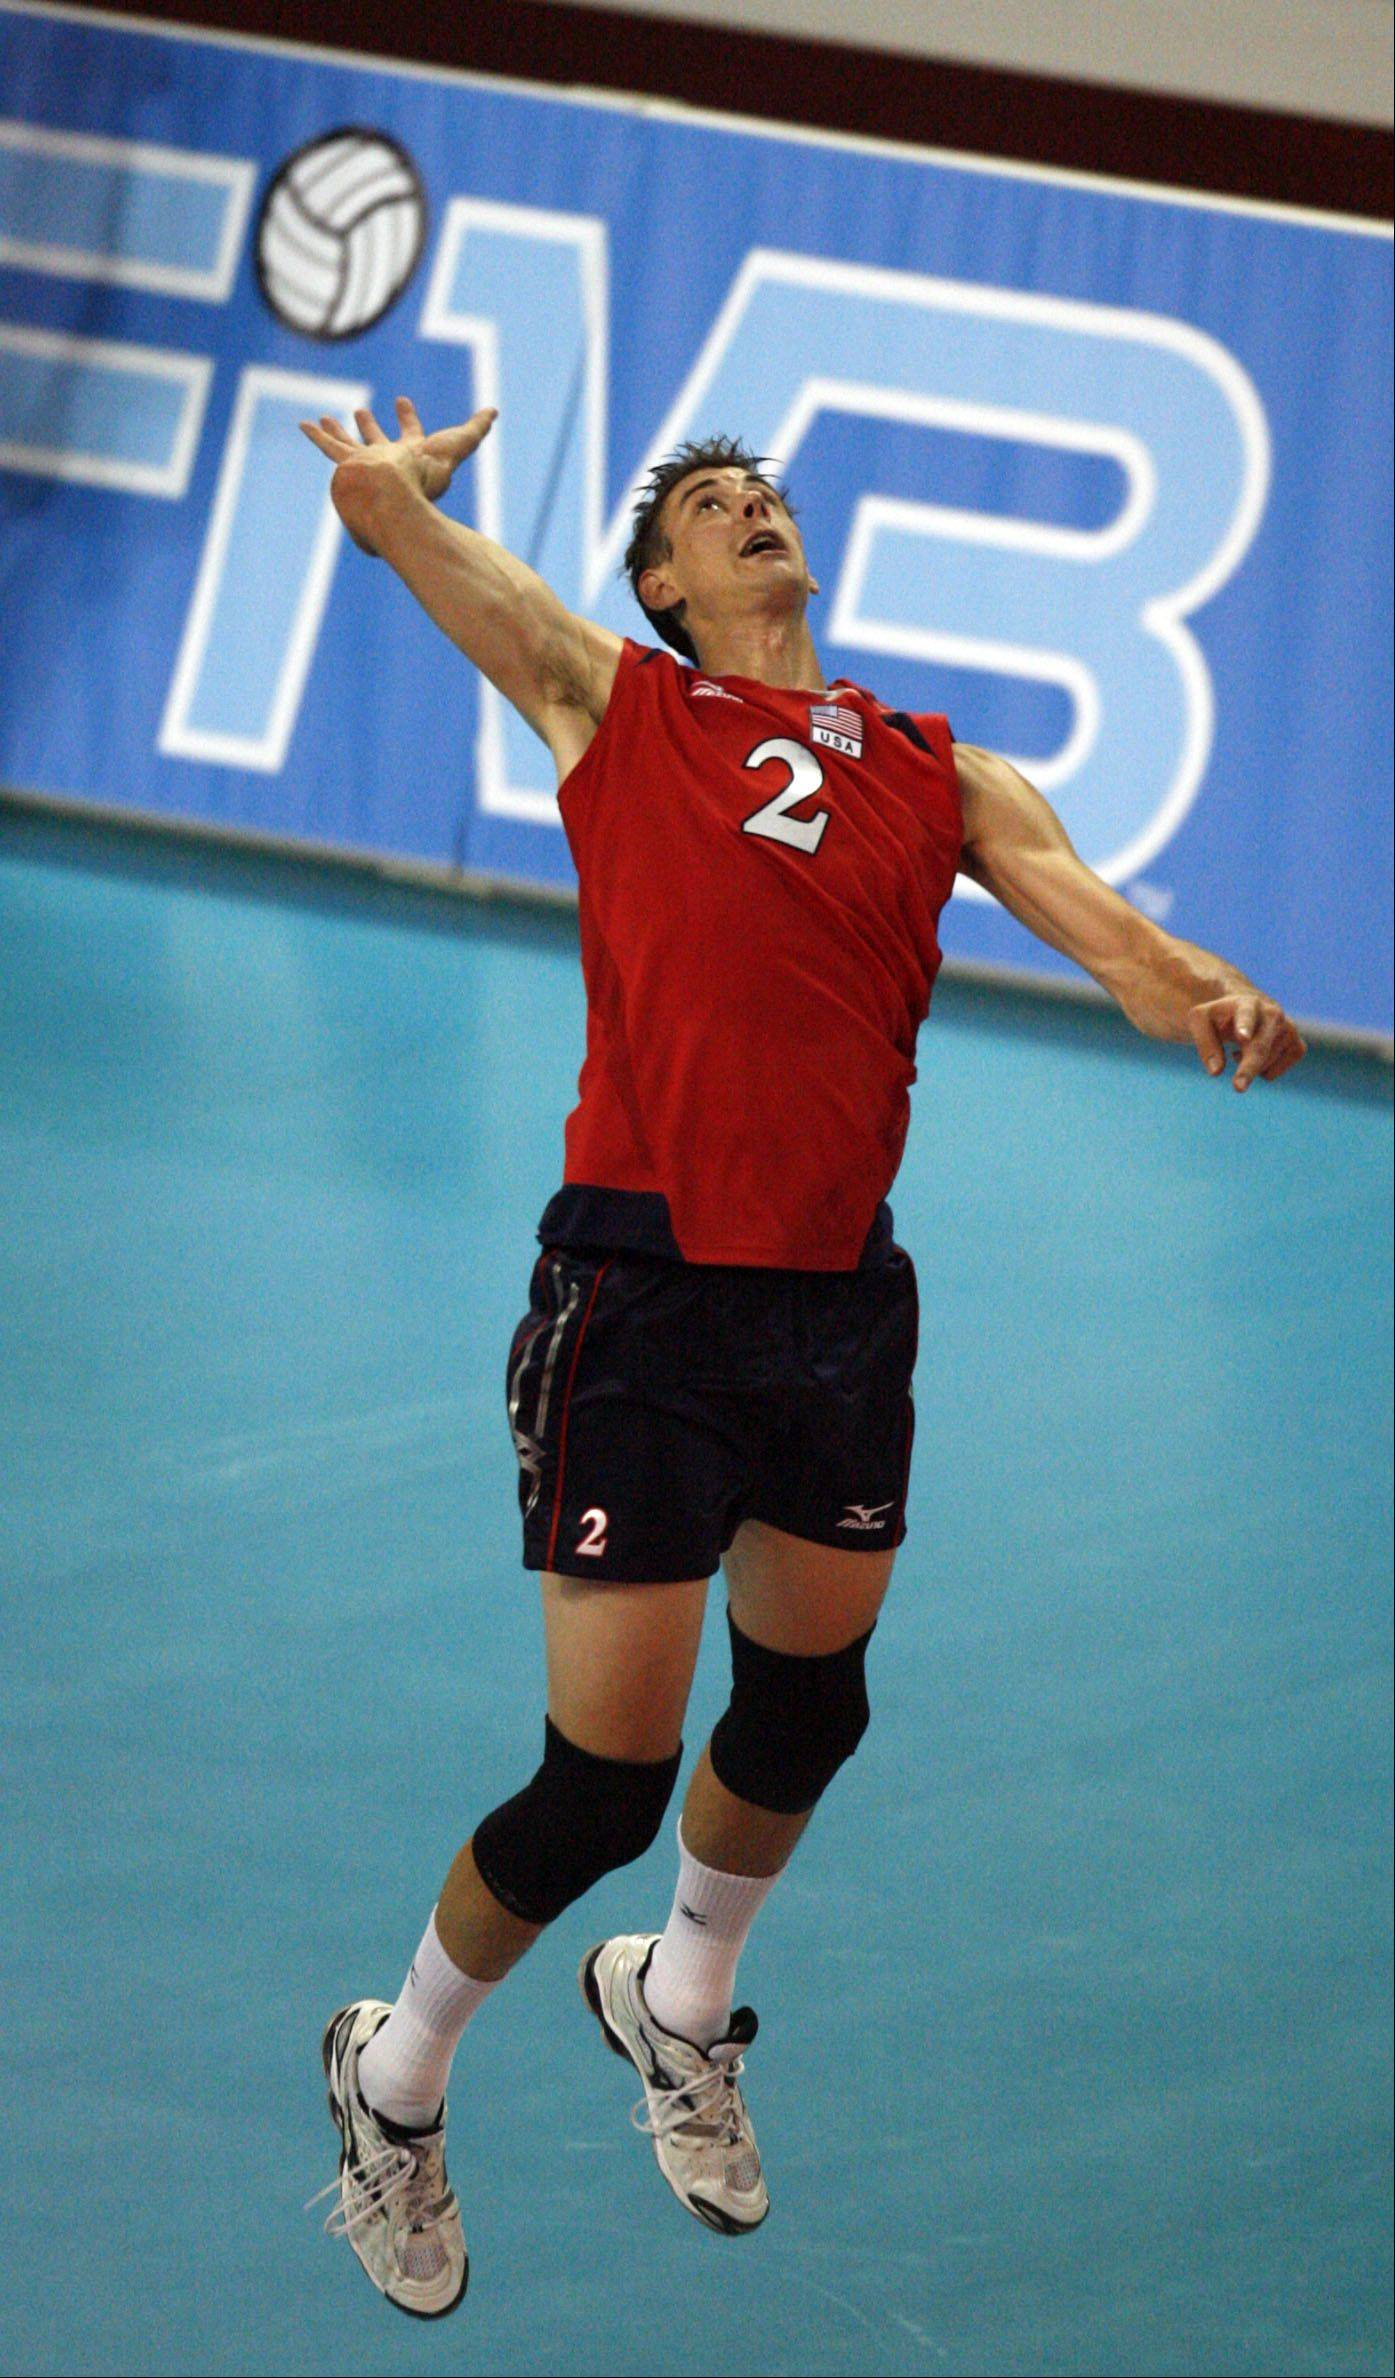 Team USA's Sean Rooney, who attended Wheaton Warrenville South, looks to serve the ball in lost to Finland in the FIVB World League volleyball competition opening match in 3-2 sets at Sears Centre in Hoffman Estates .